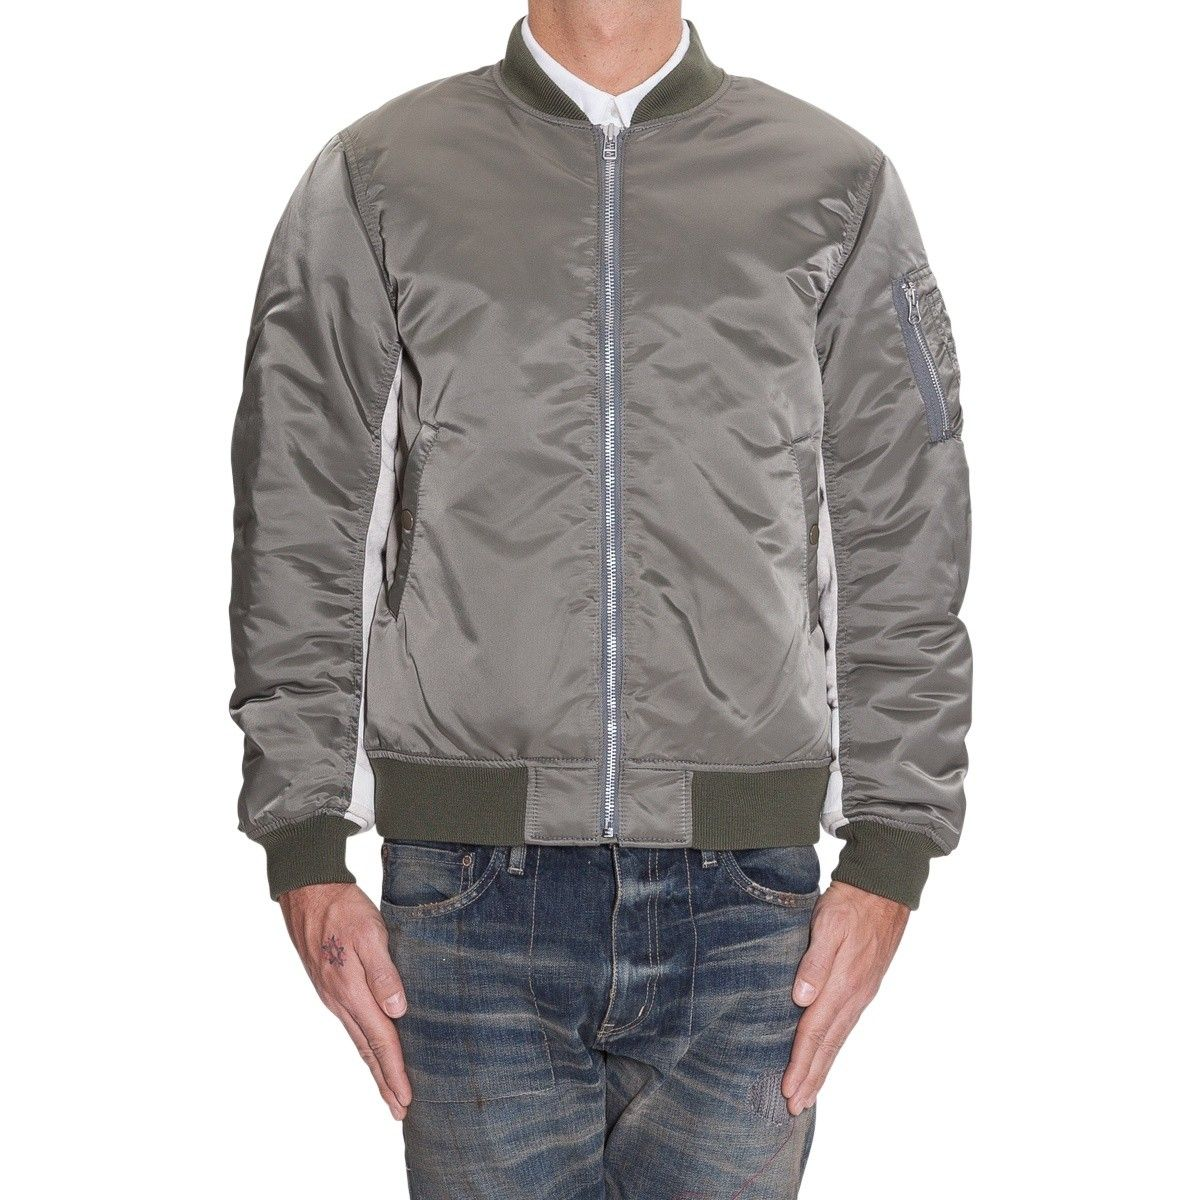 Details about ADIDAS ORIGINALS BY ALEXANDER WANG Reversible Bomber Jacket Fleece Sherpa size S